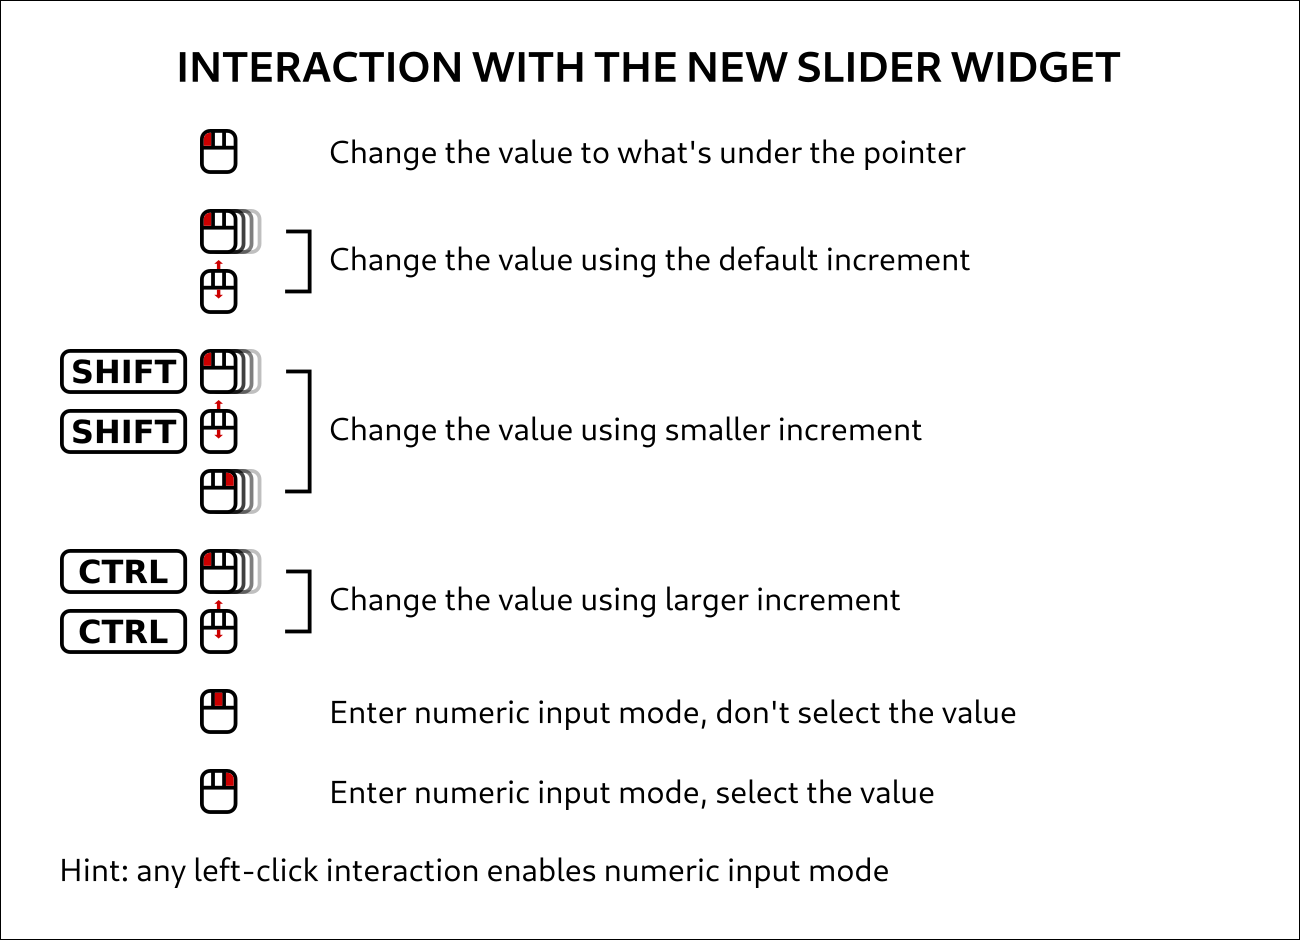 New interaction model for the slider widget